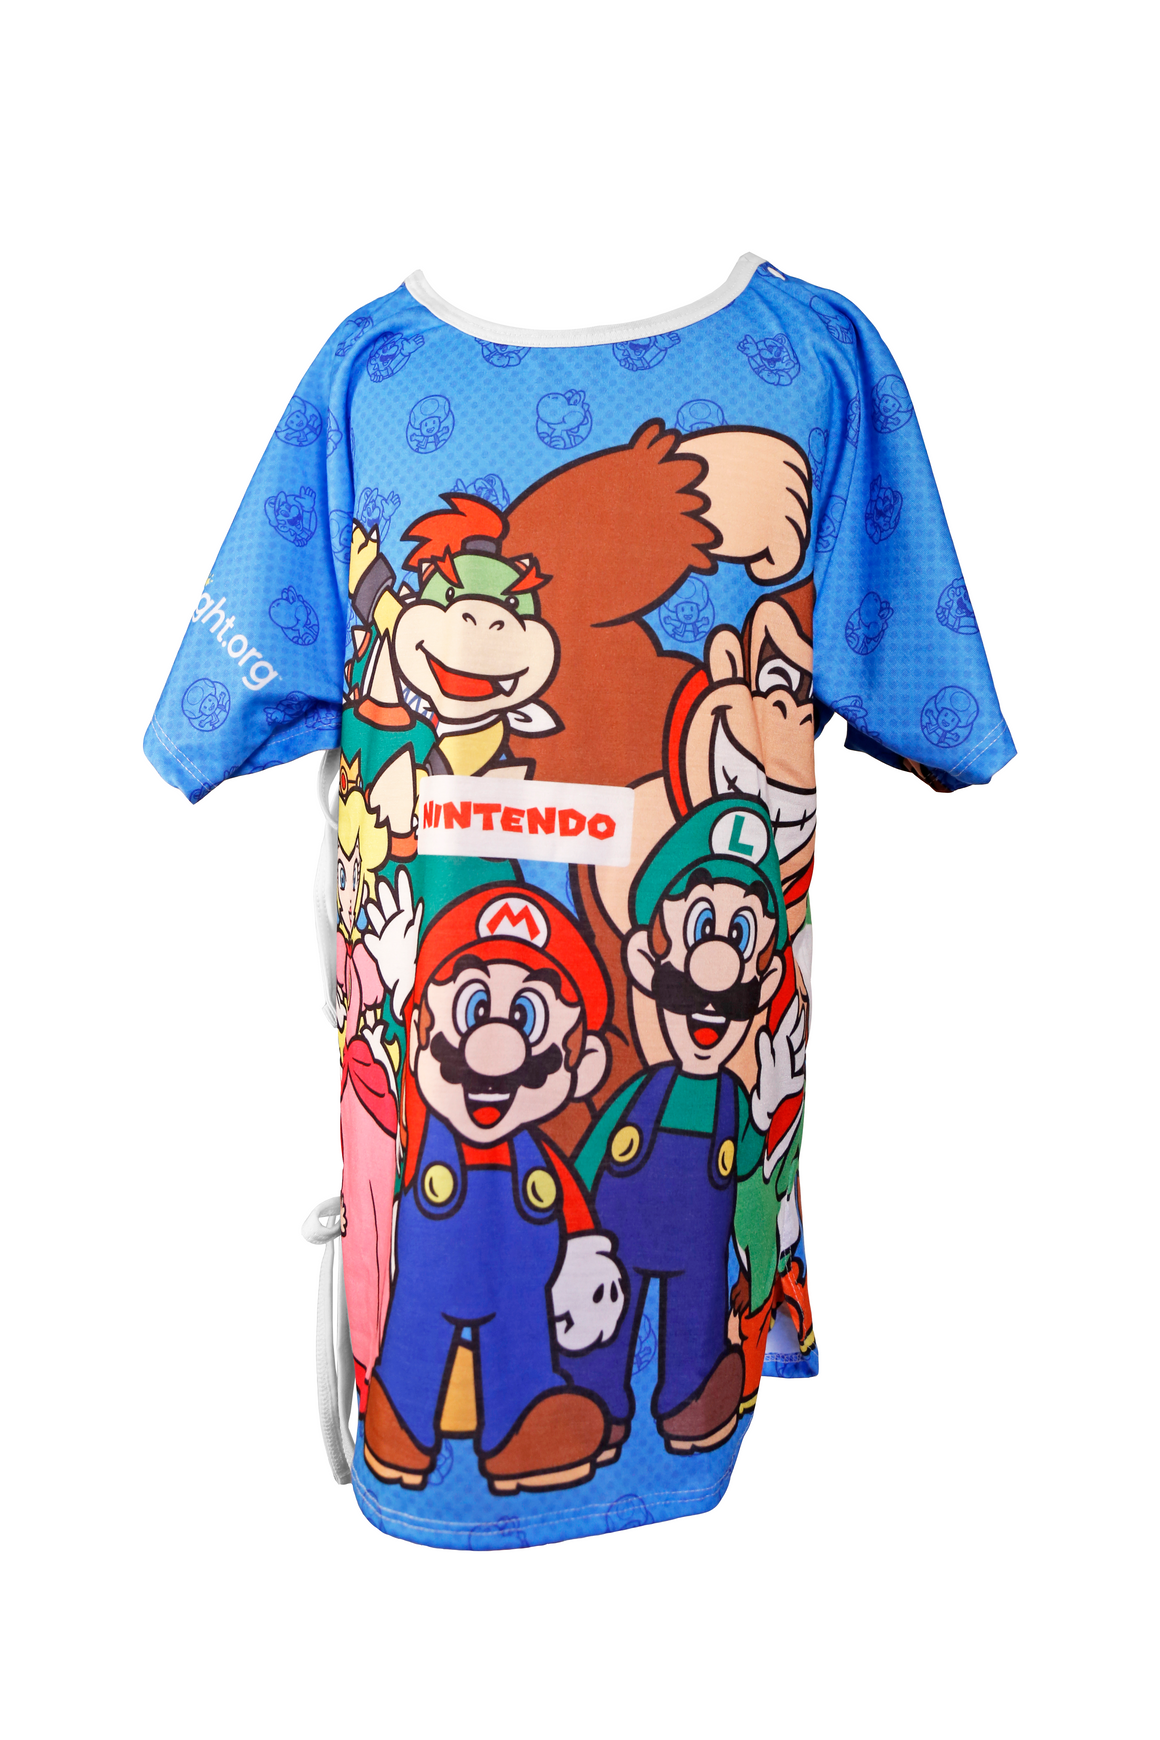 Nintendo All Stars Gown